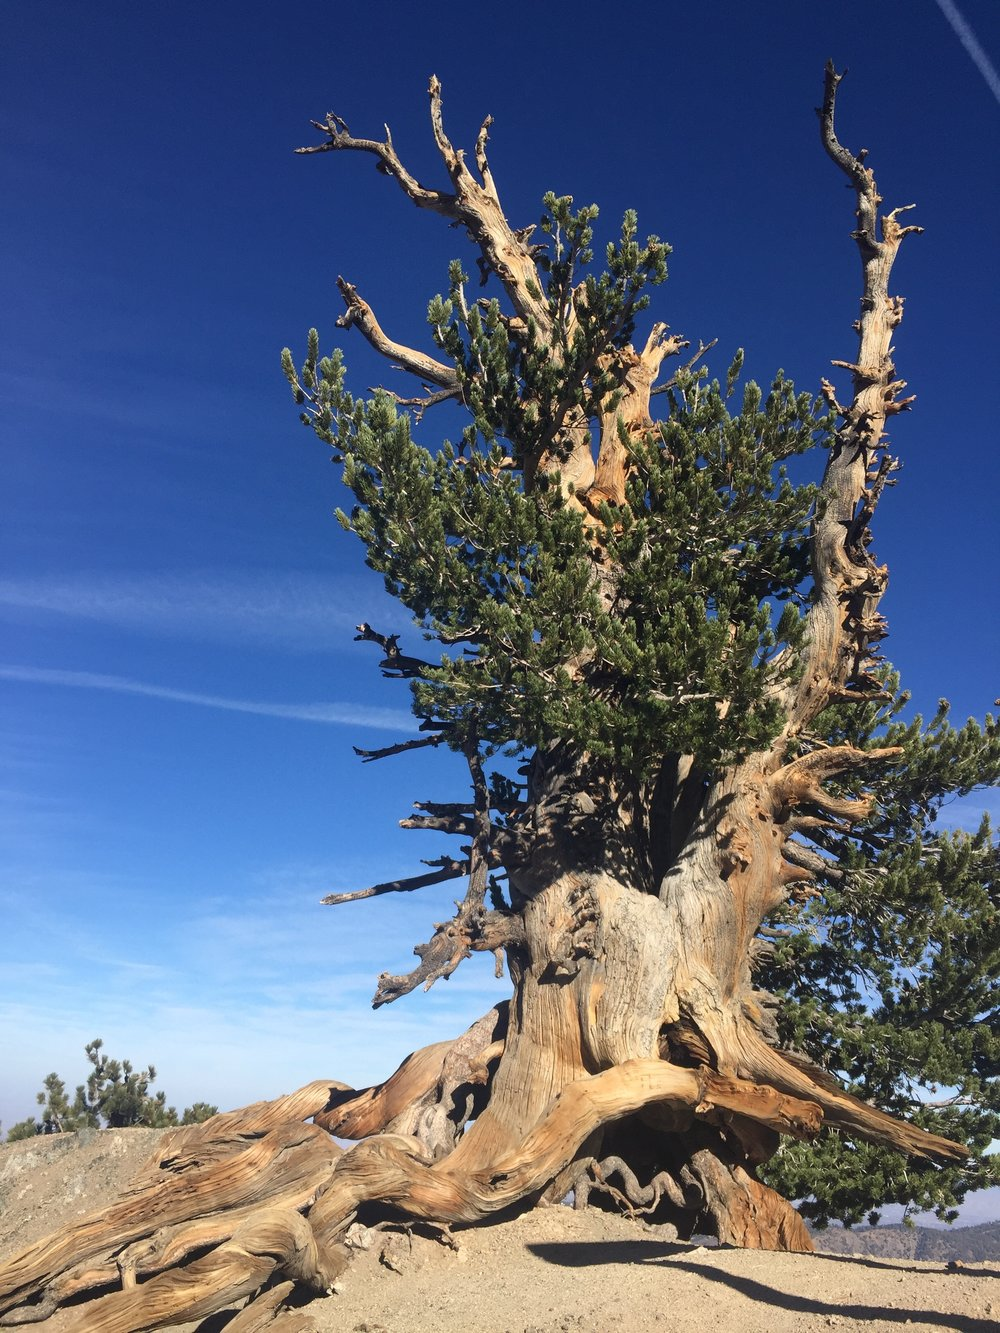 The Wally Waldron Tree, a Limber pine, estimated to be at least 1500 years old.